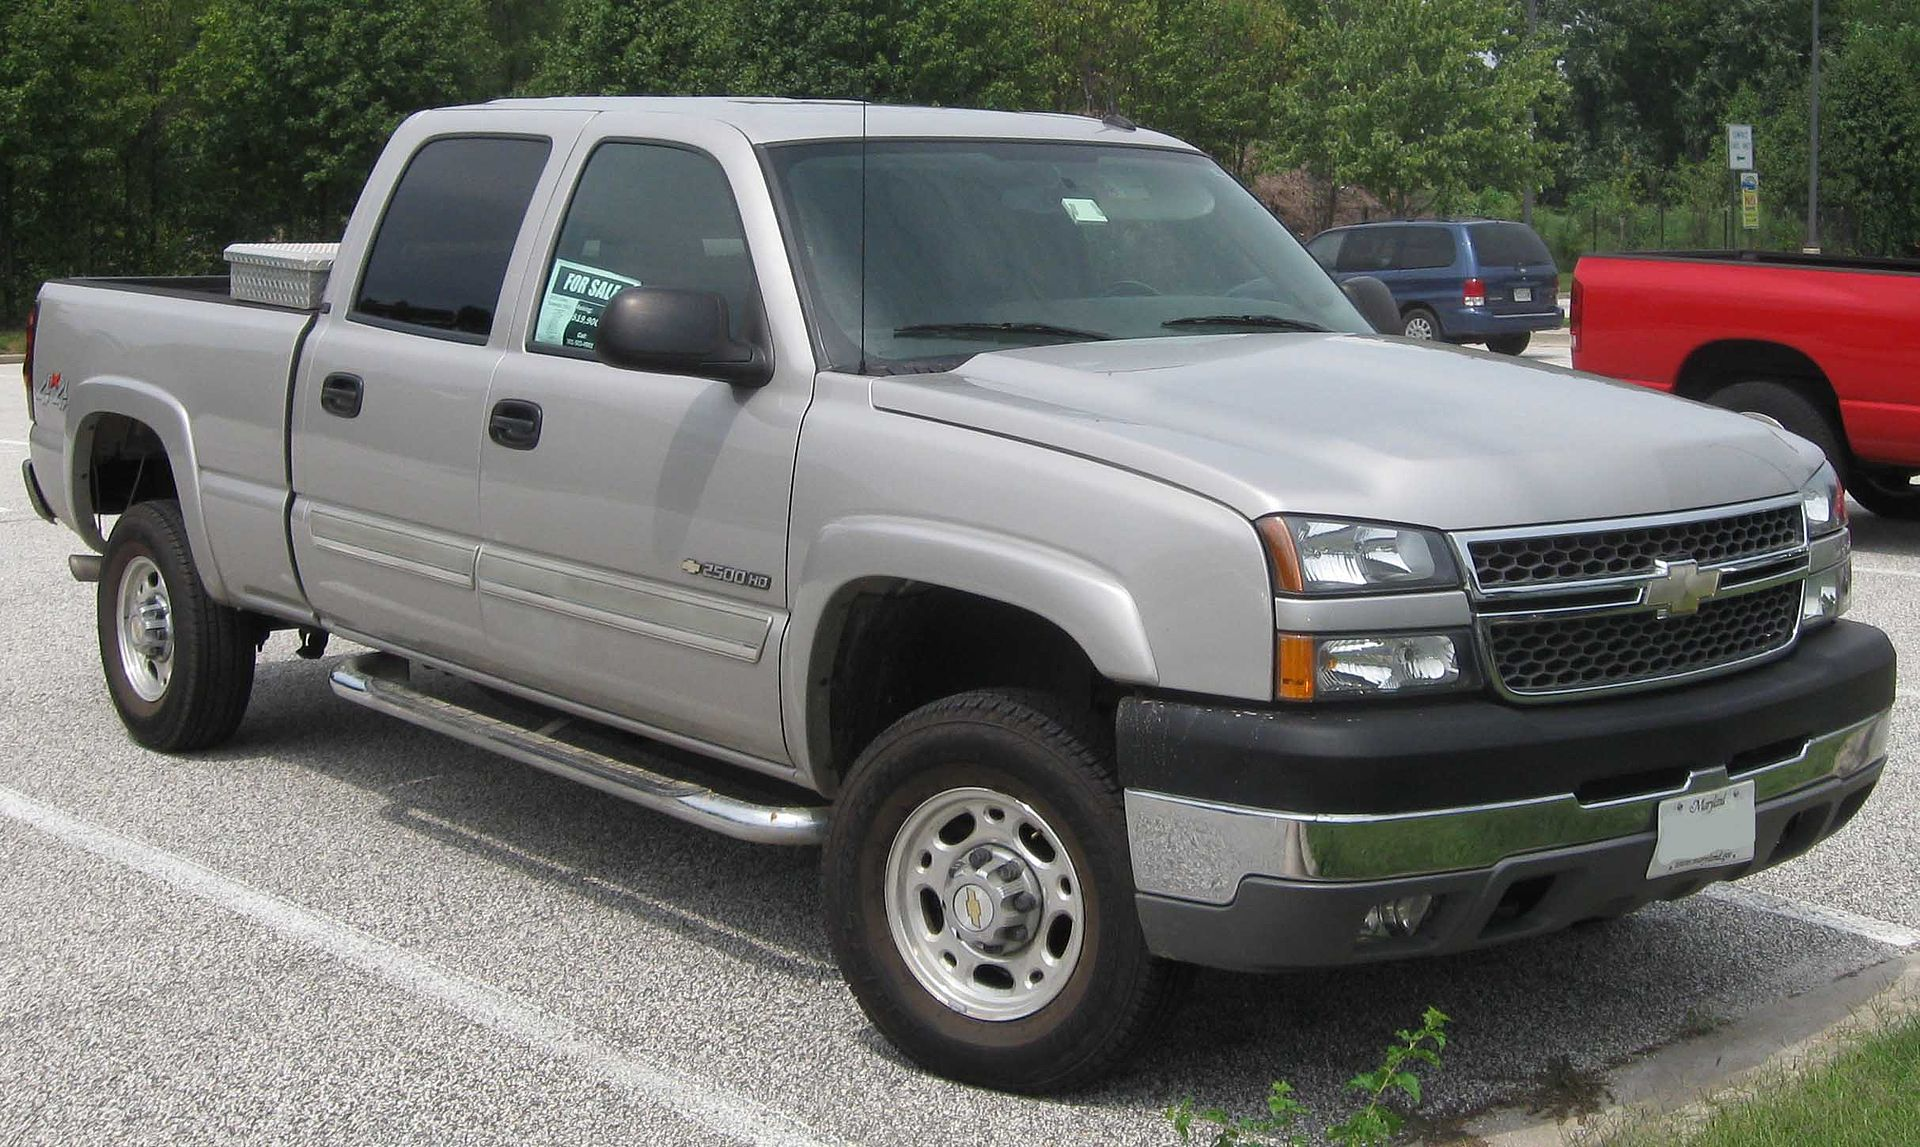 hight resolution of chevy silverado or gmc sierra y l5p hummer h1 alpha 2 lly